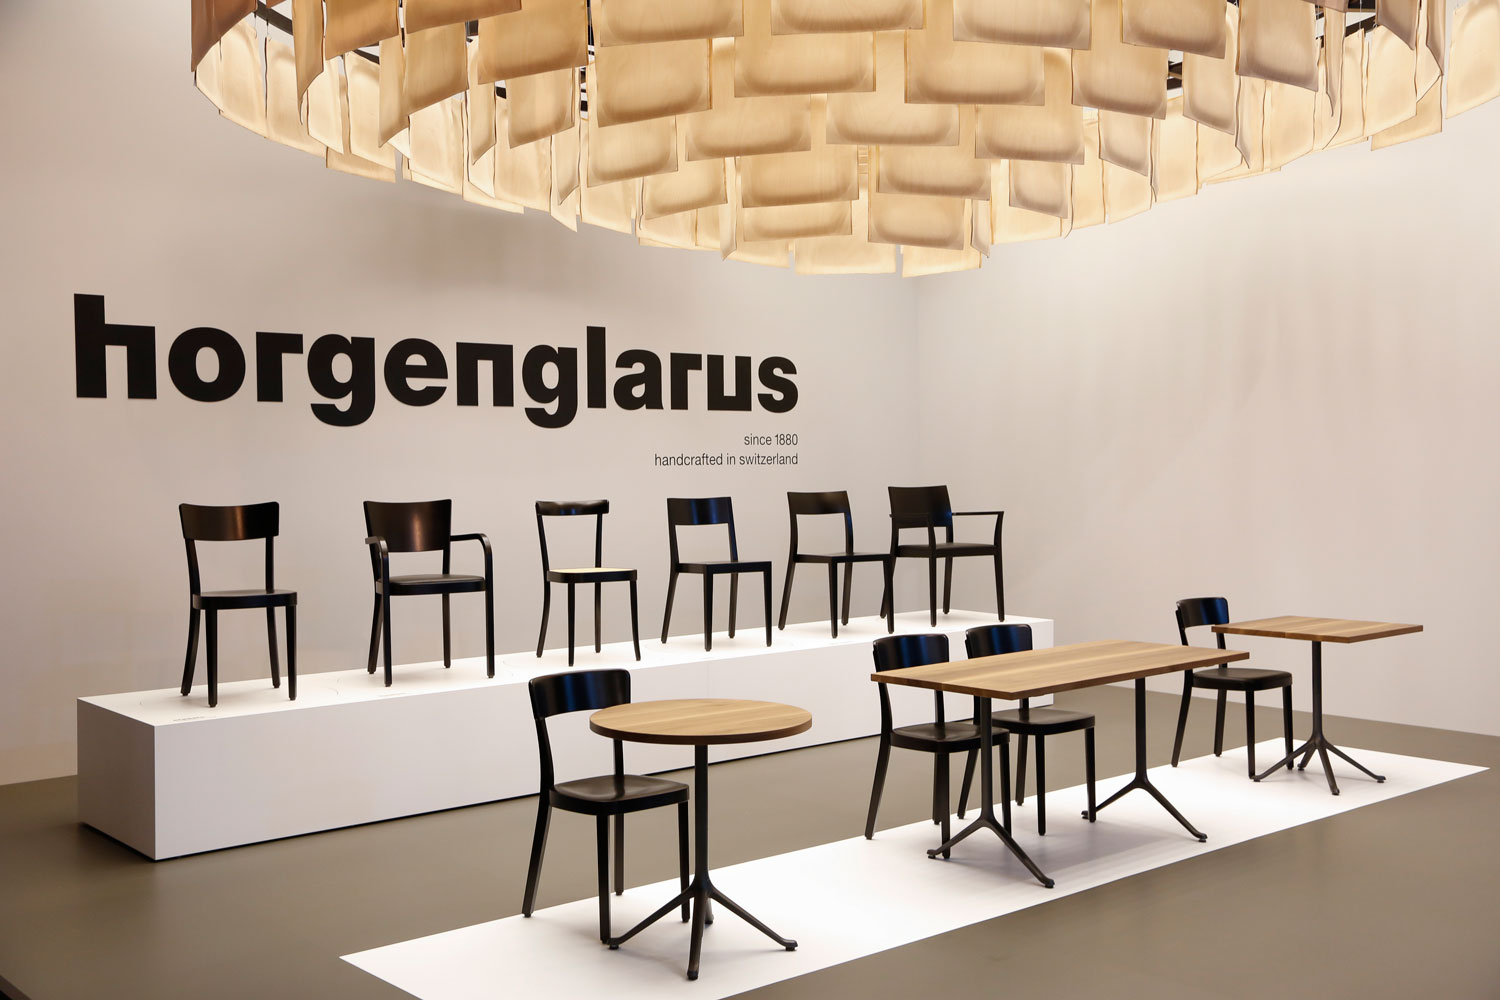 Exhibition Stands In Cologne